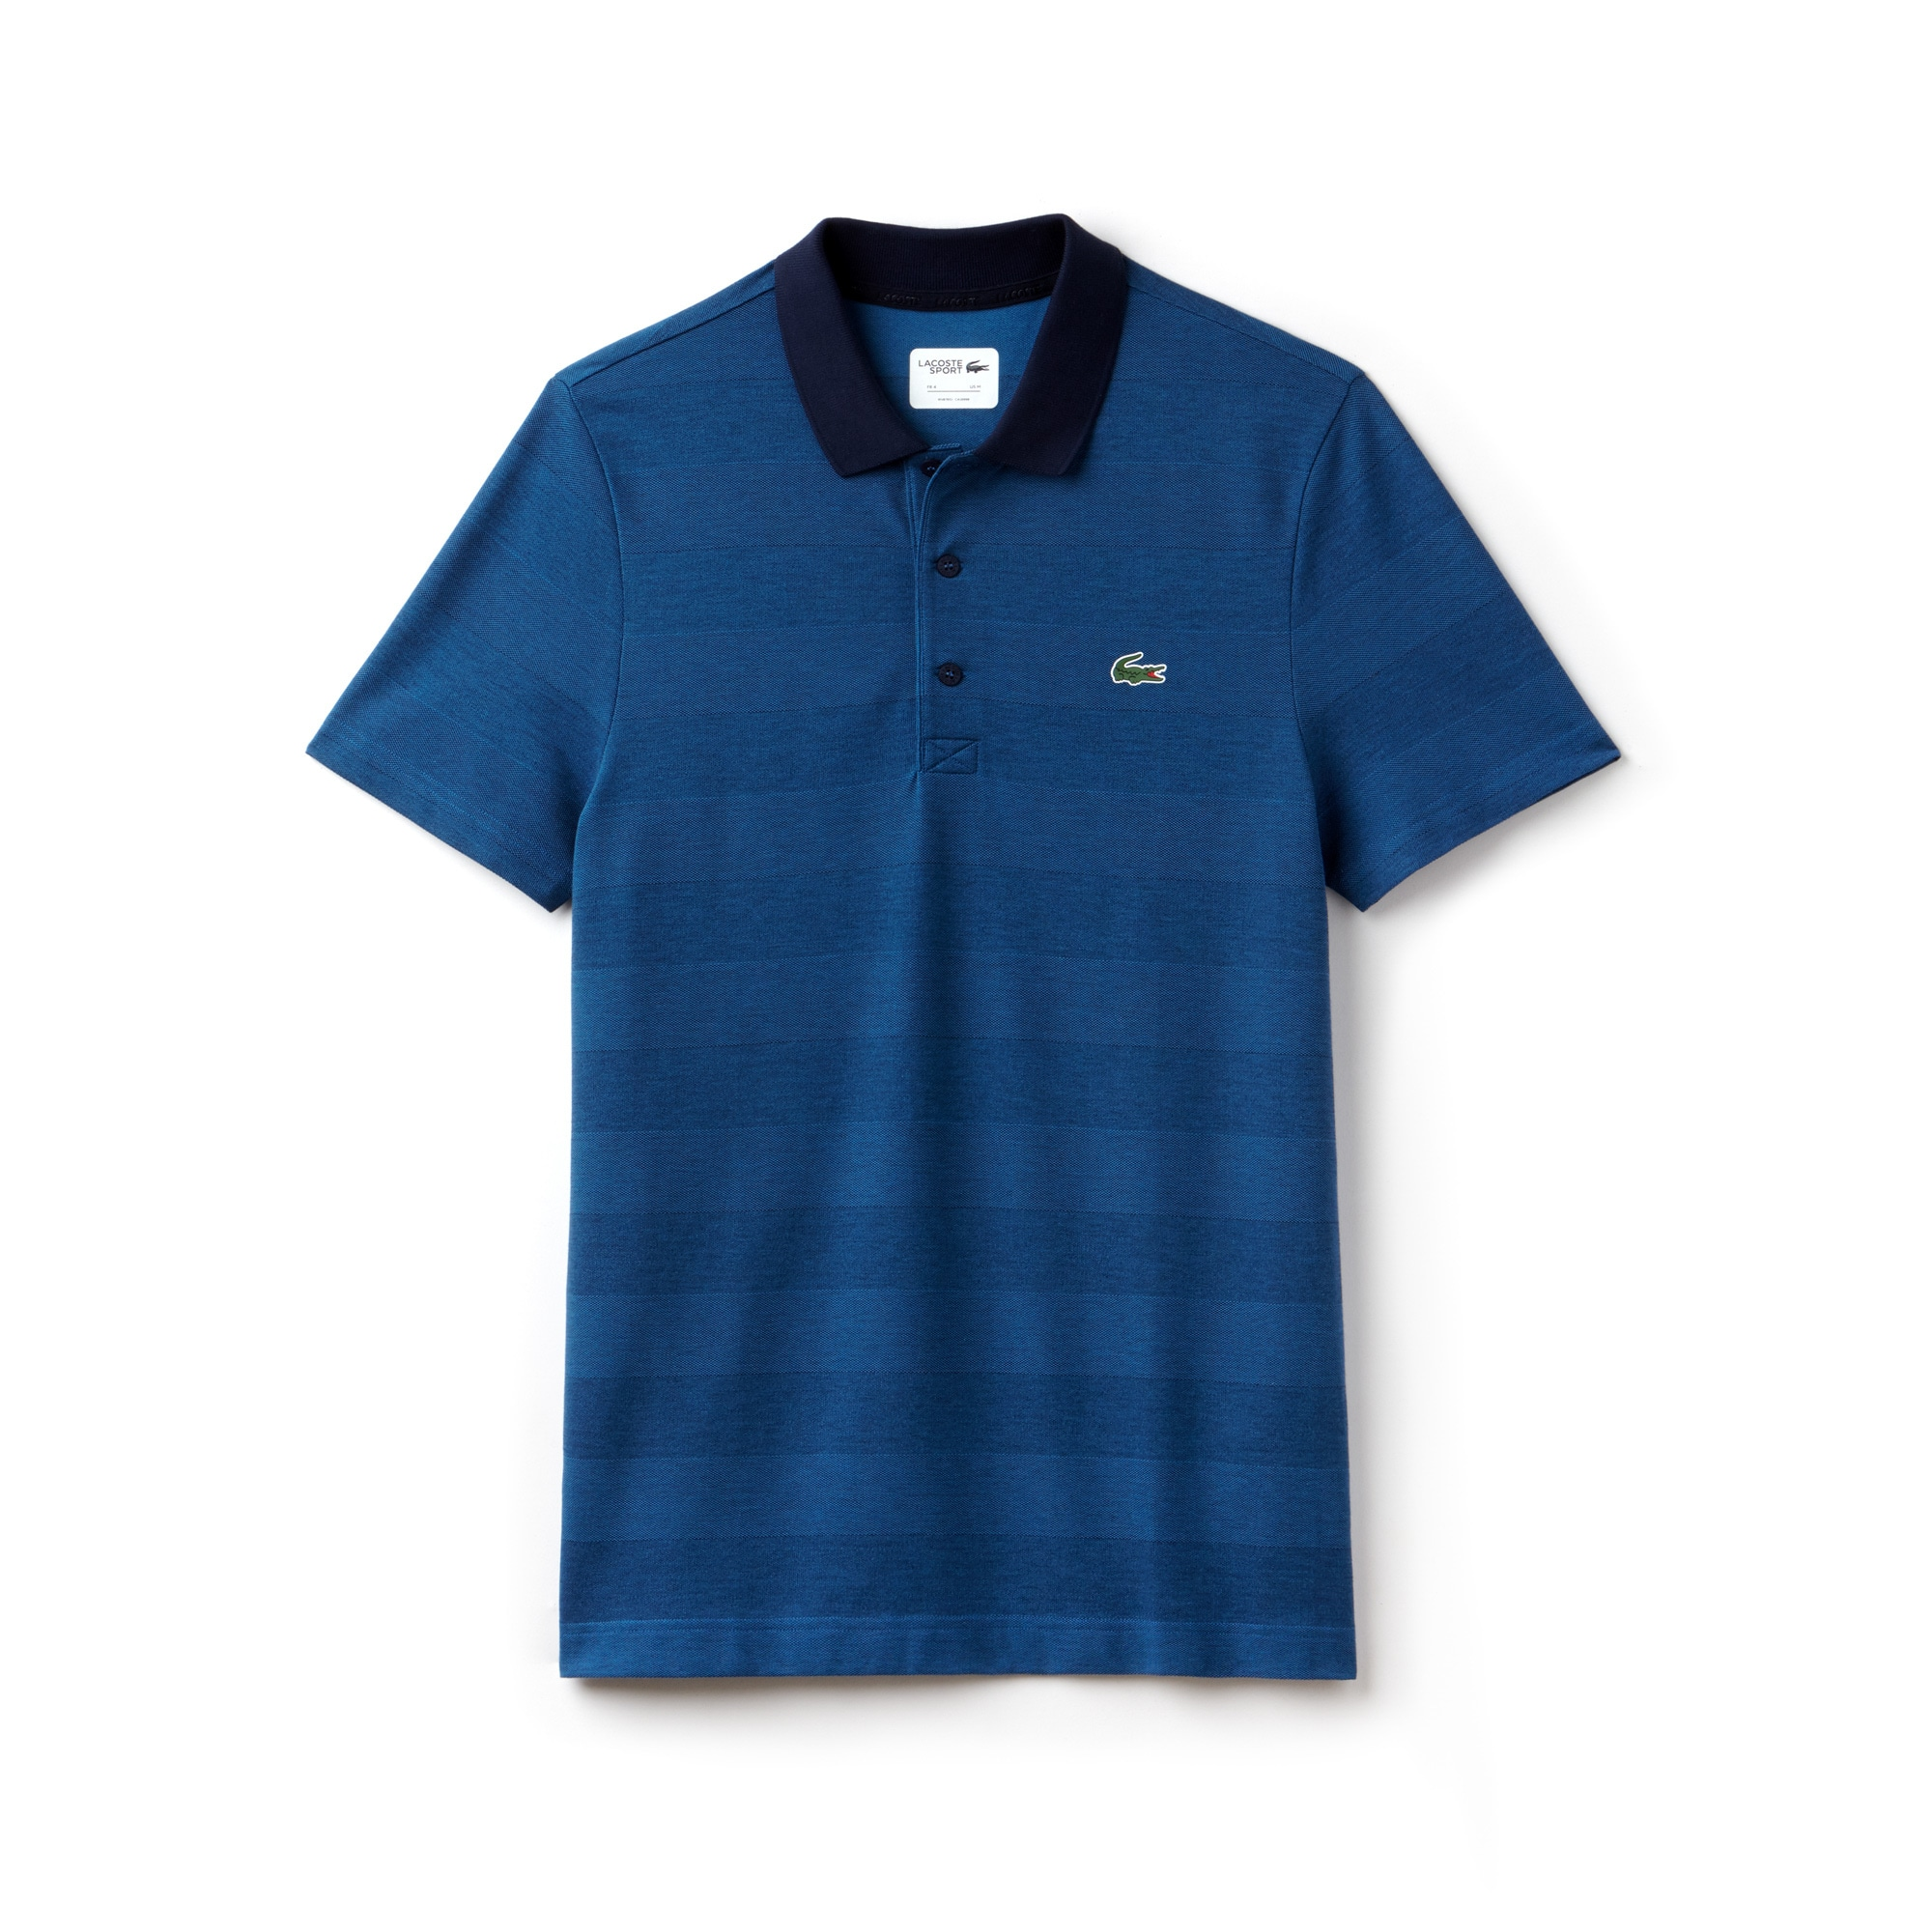 라코스테 Lacoste Mens SPORT Technical Jersey Golf Polo,navy blue/medway